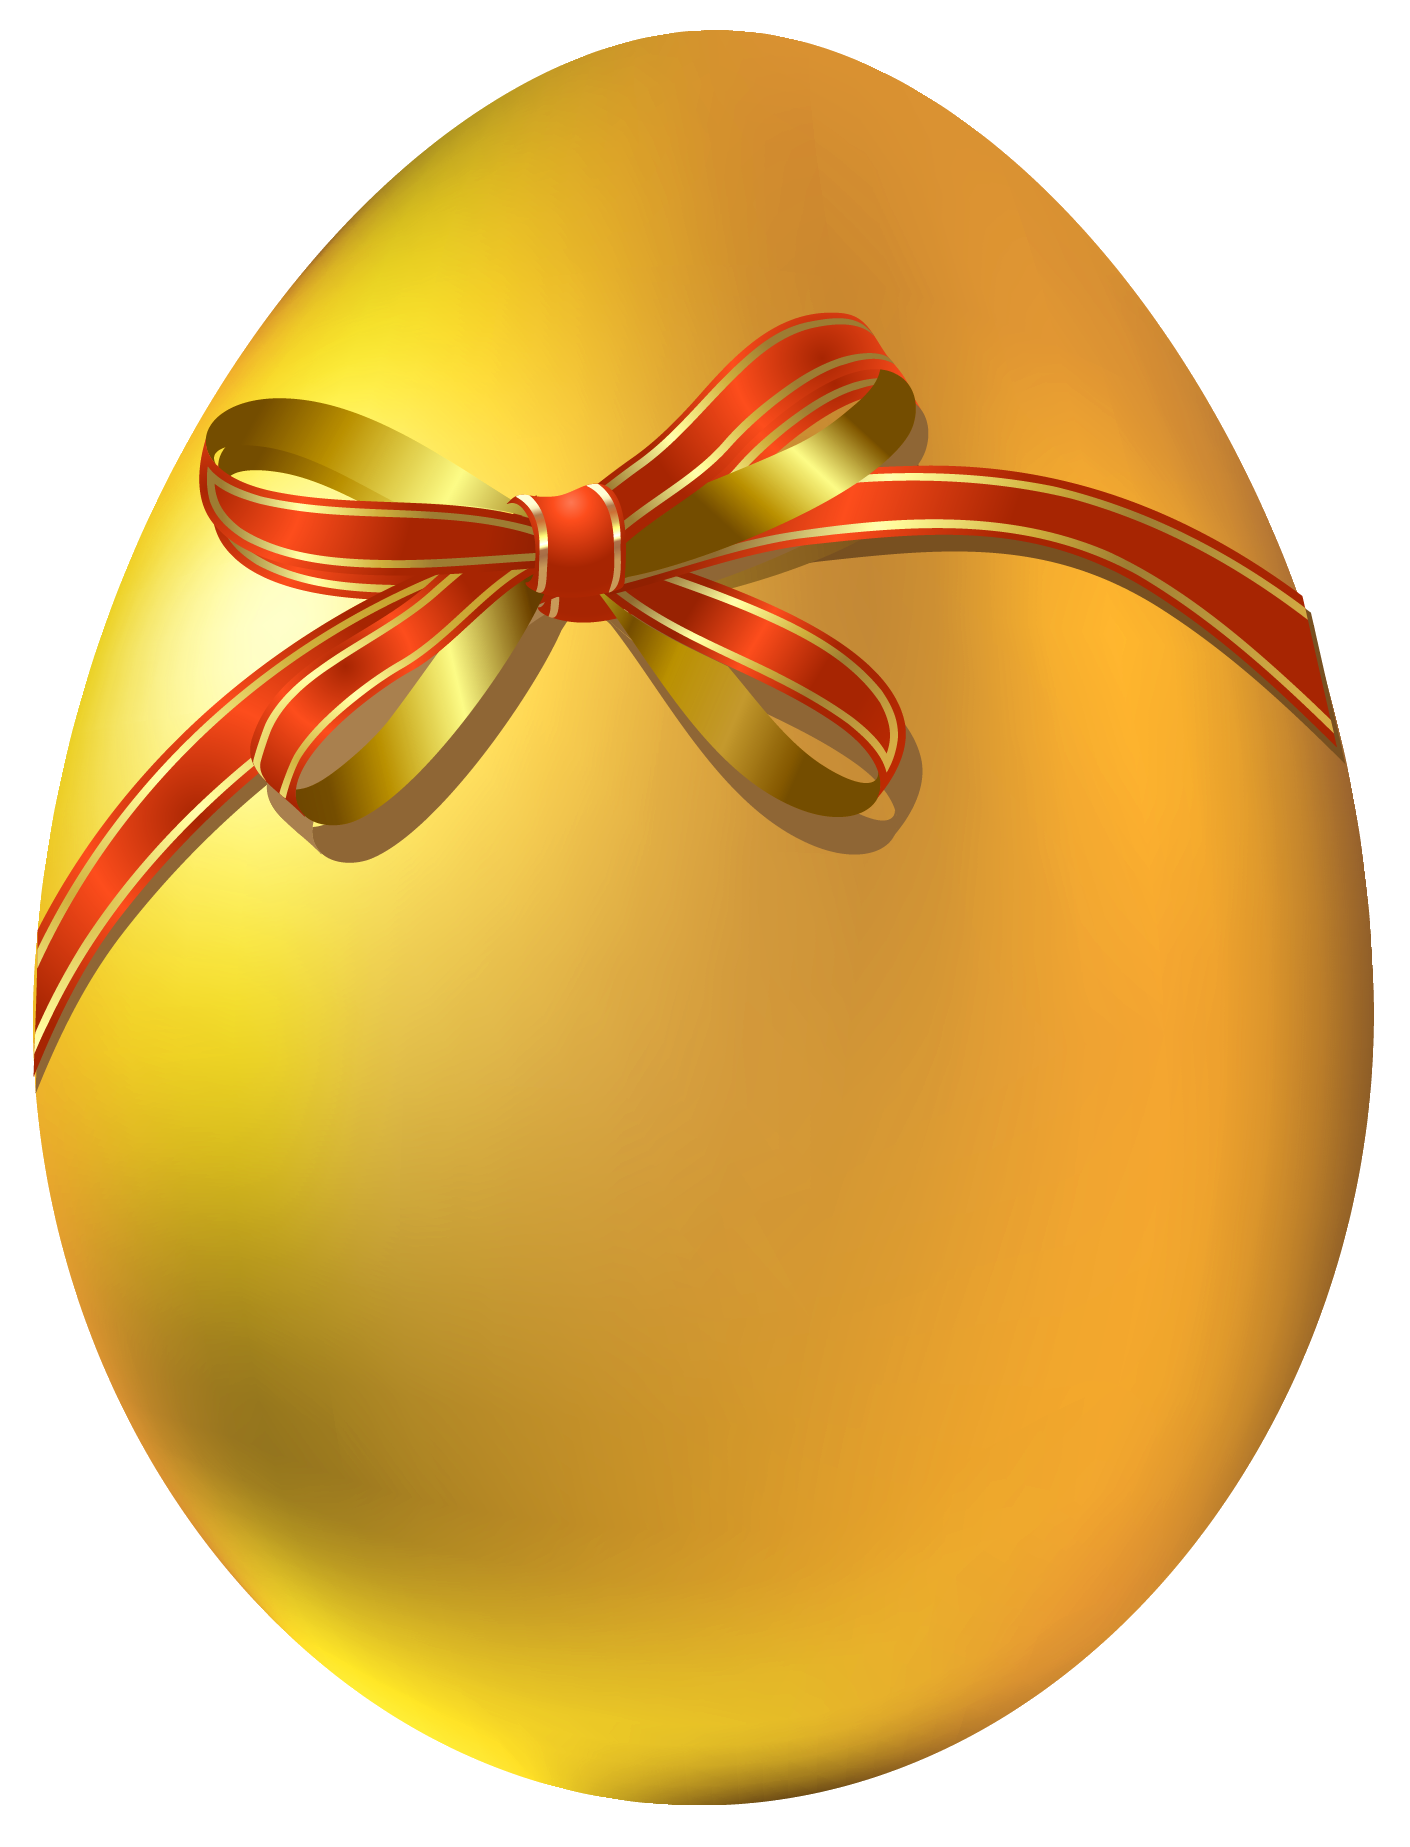 Egg clipart #4, Download drawings